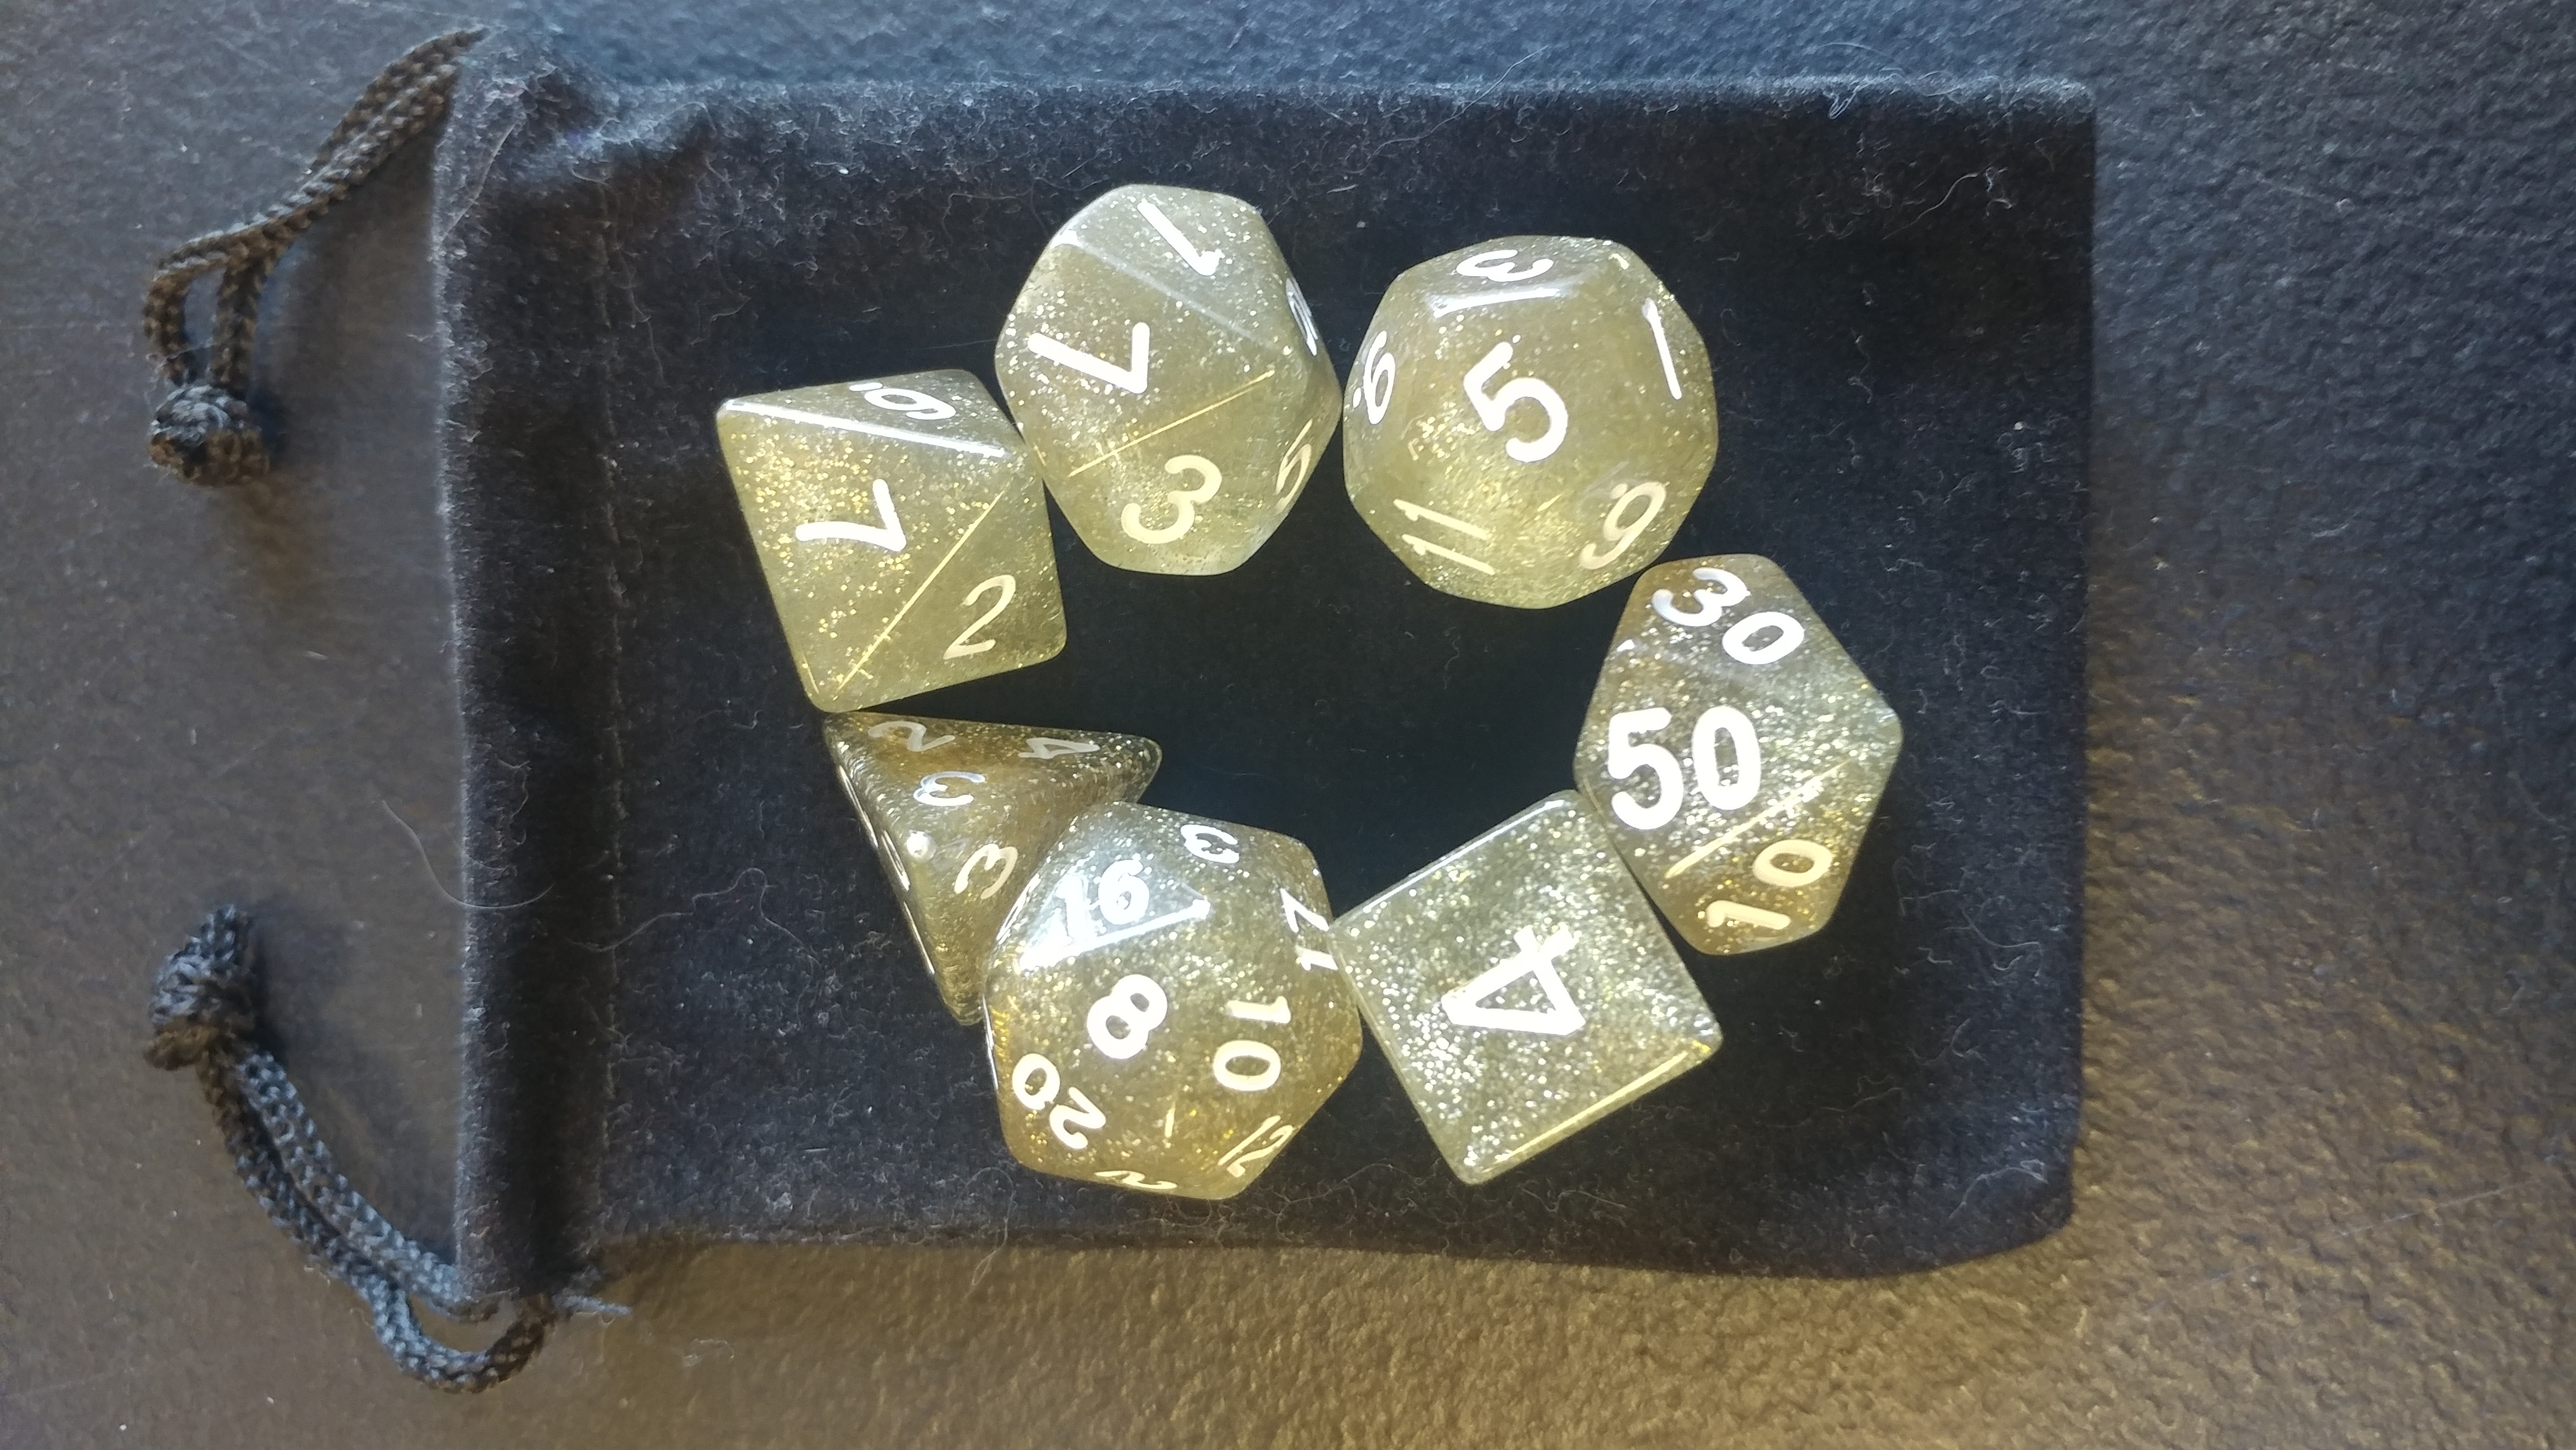 Gold/White 7 die set with bag